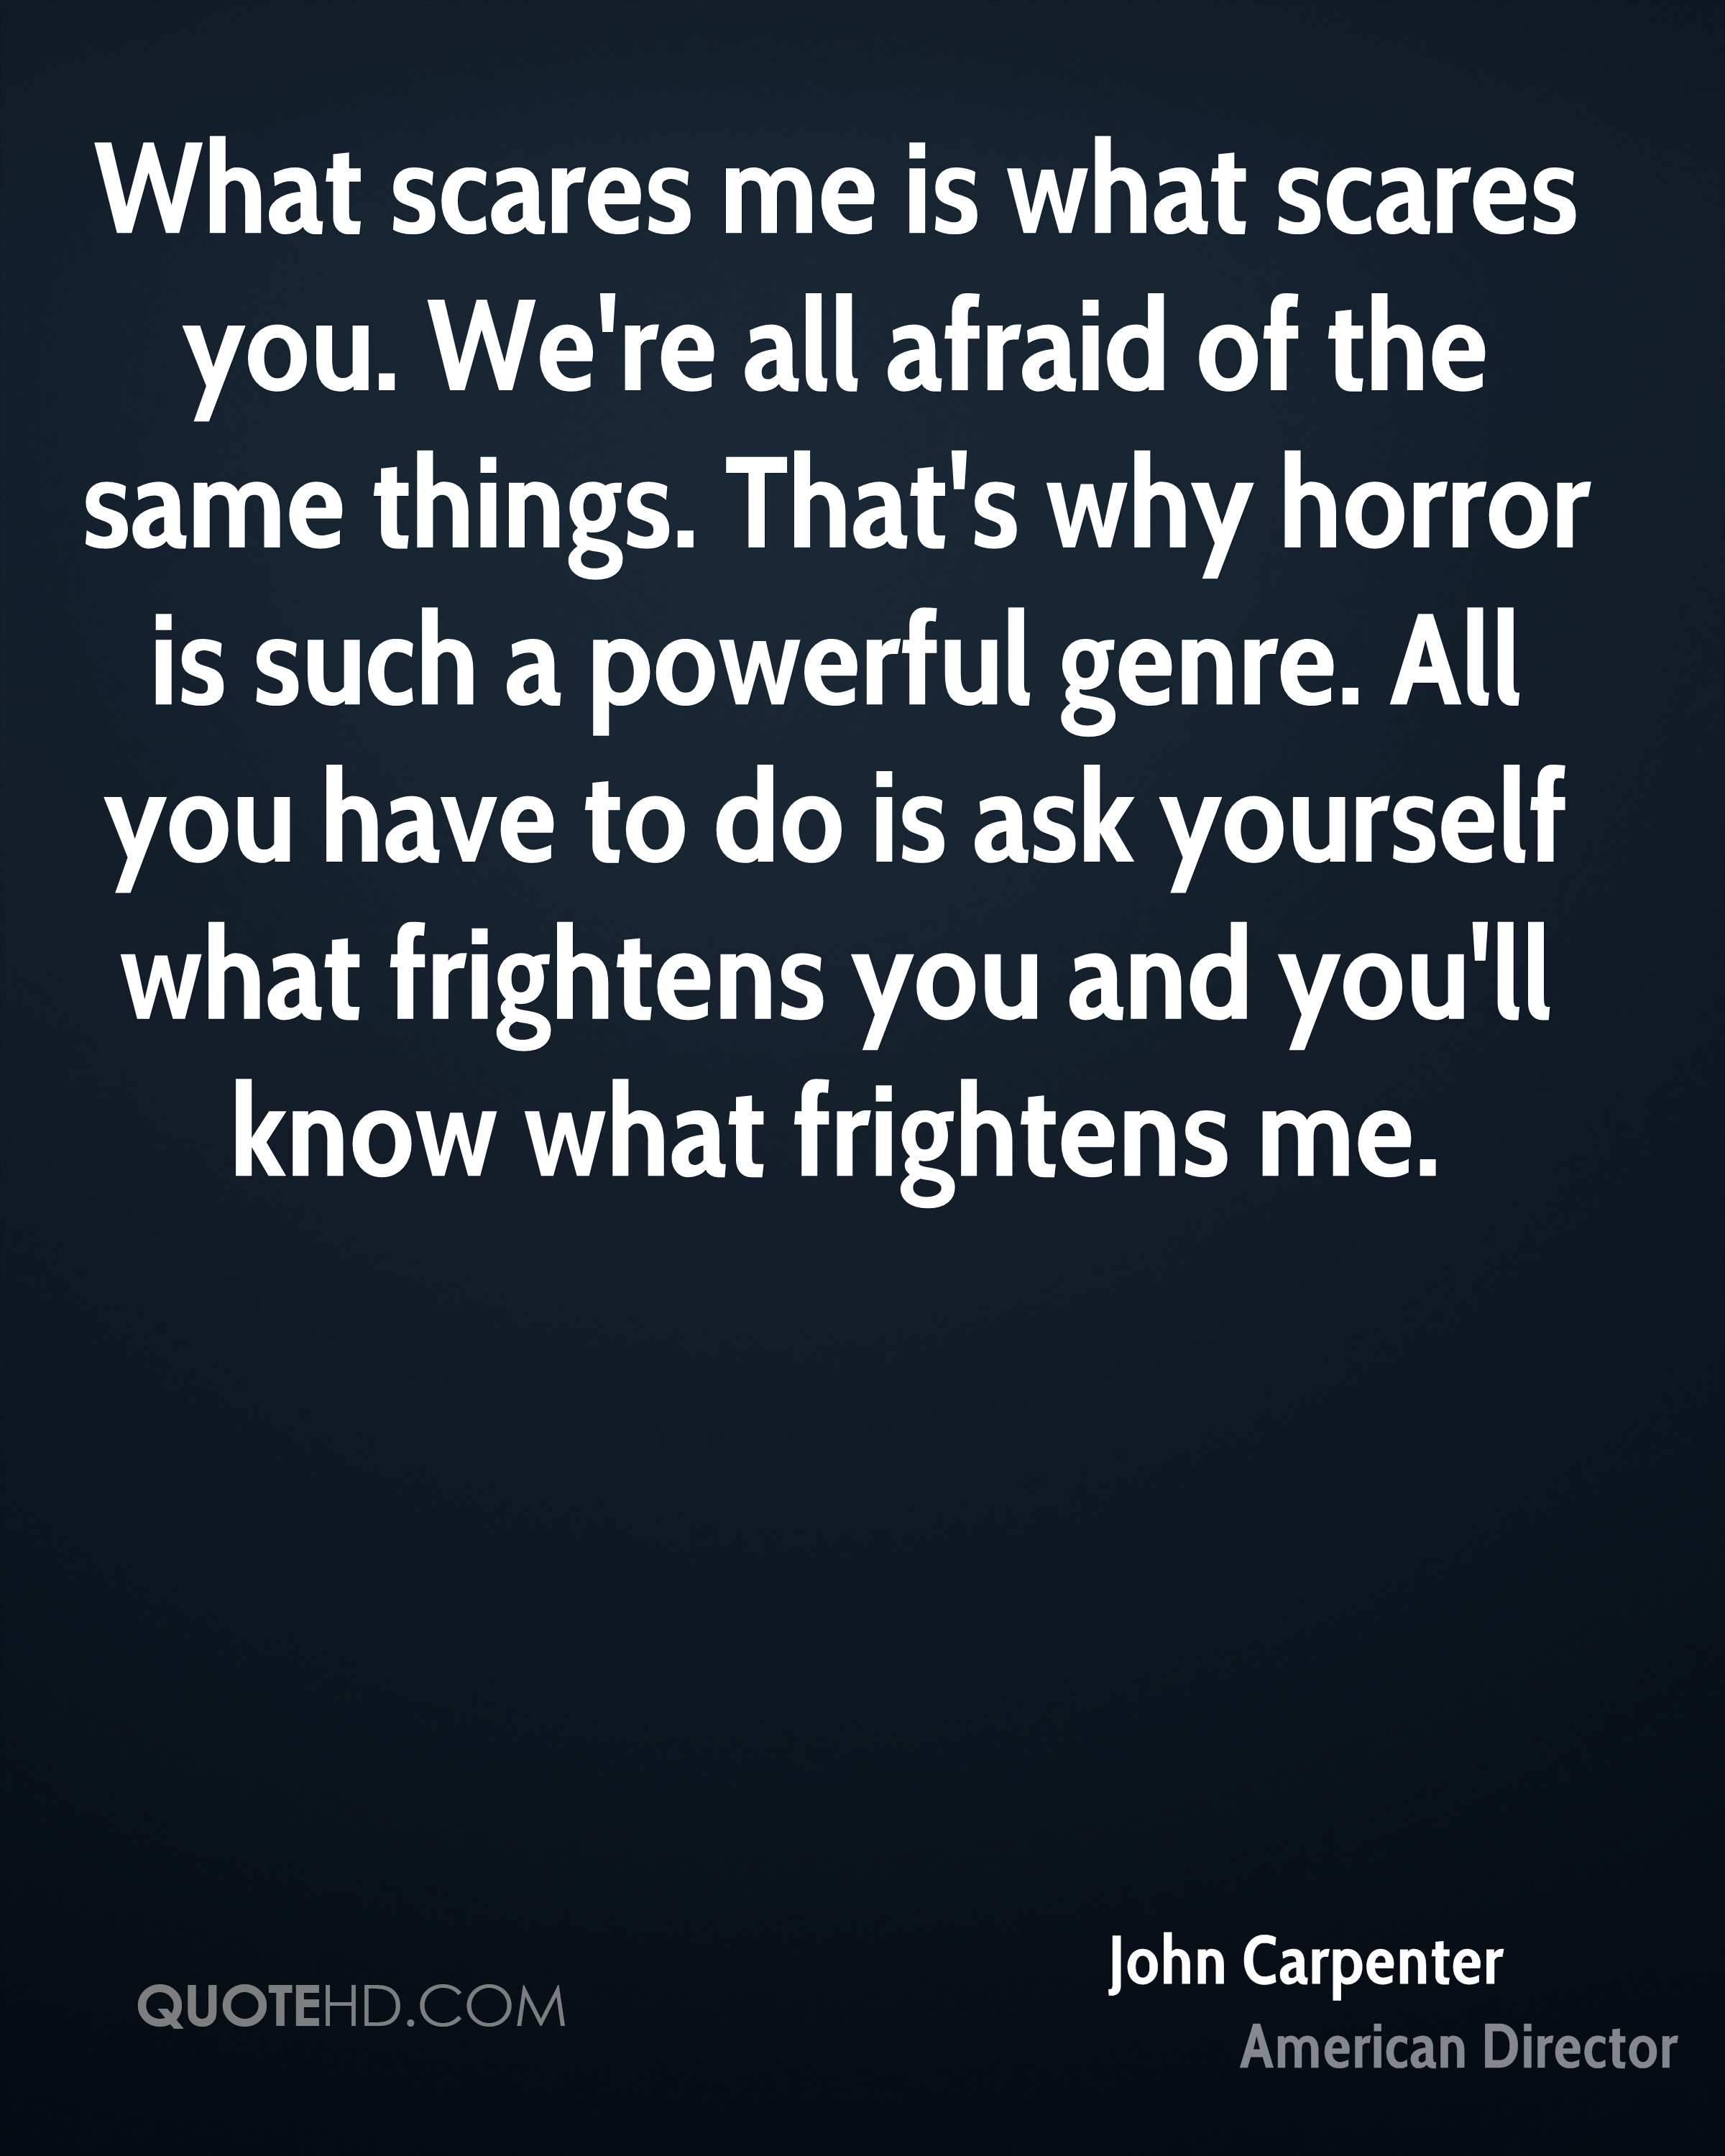 What scares me is what scares you. We're all afraid of the same things. That's why horror is such a powerful genre. All you have to do is ask yourself what frightens you and you'll know what frightens me.